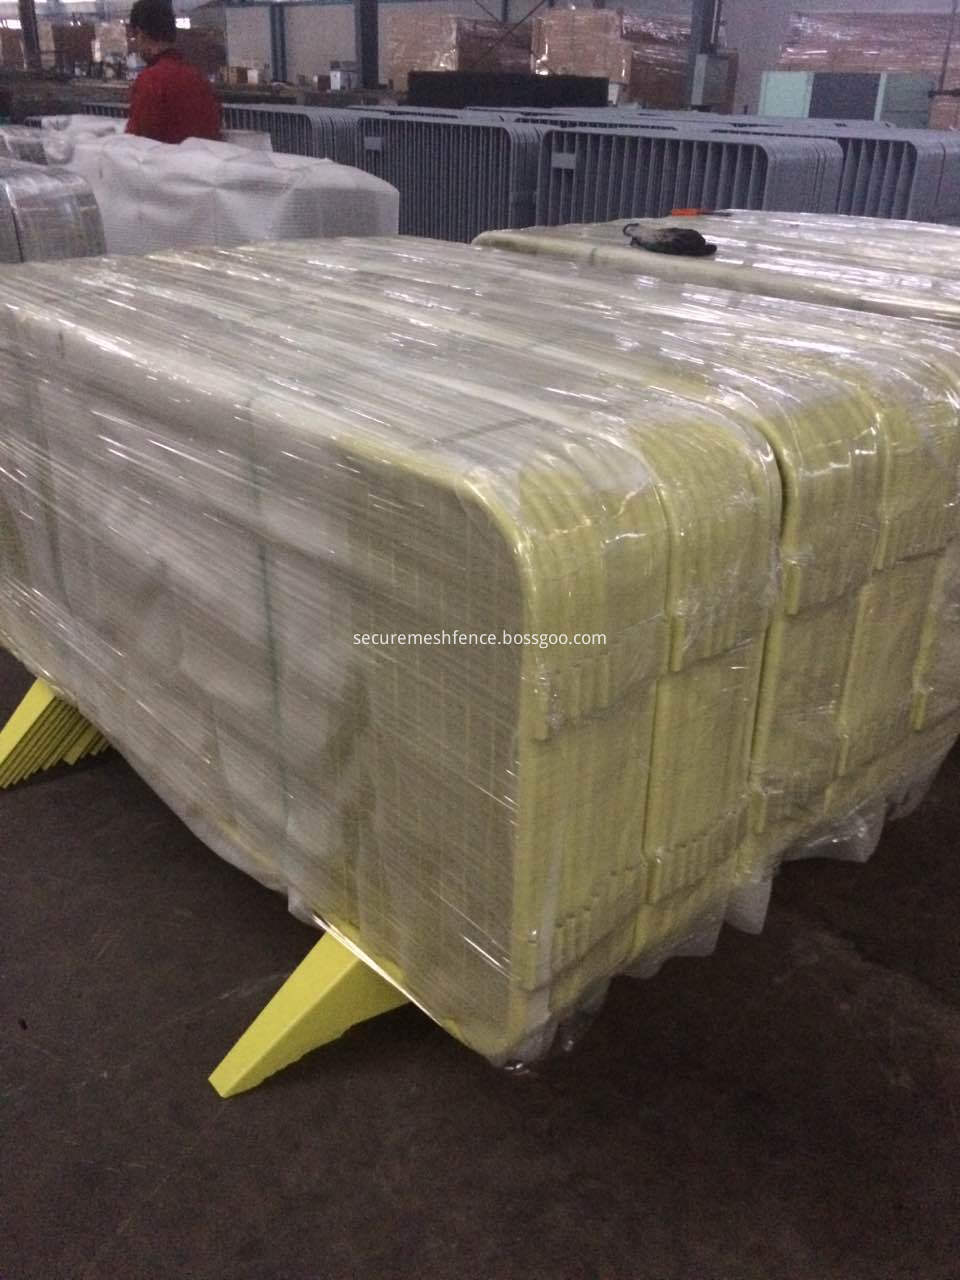 packing for mesh temporary fence